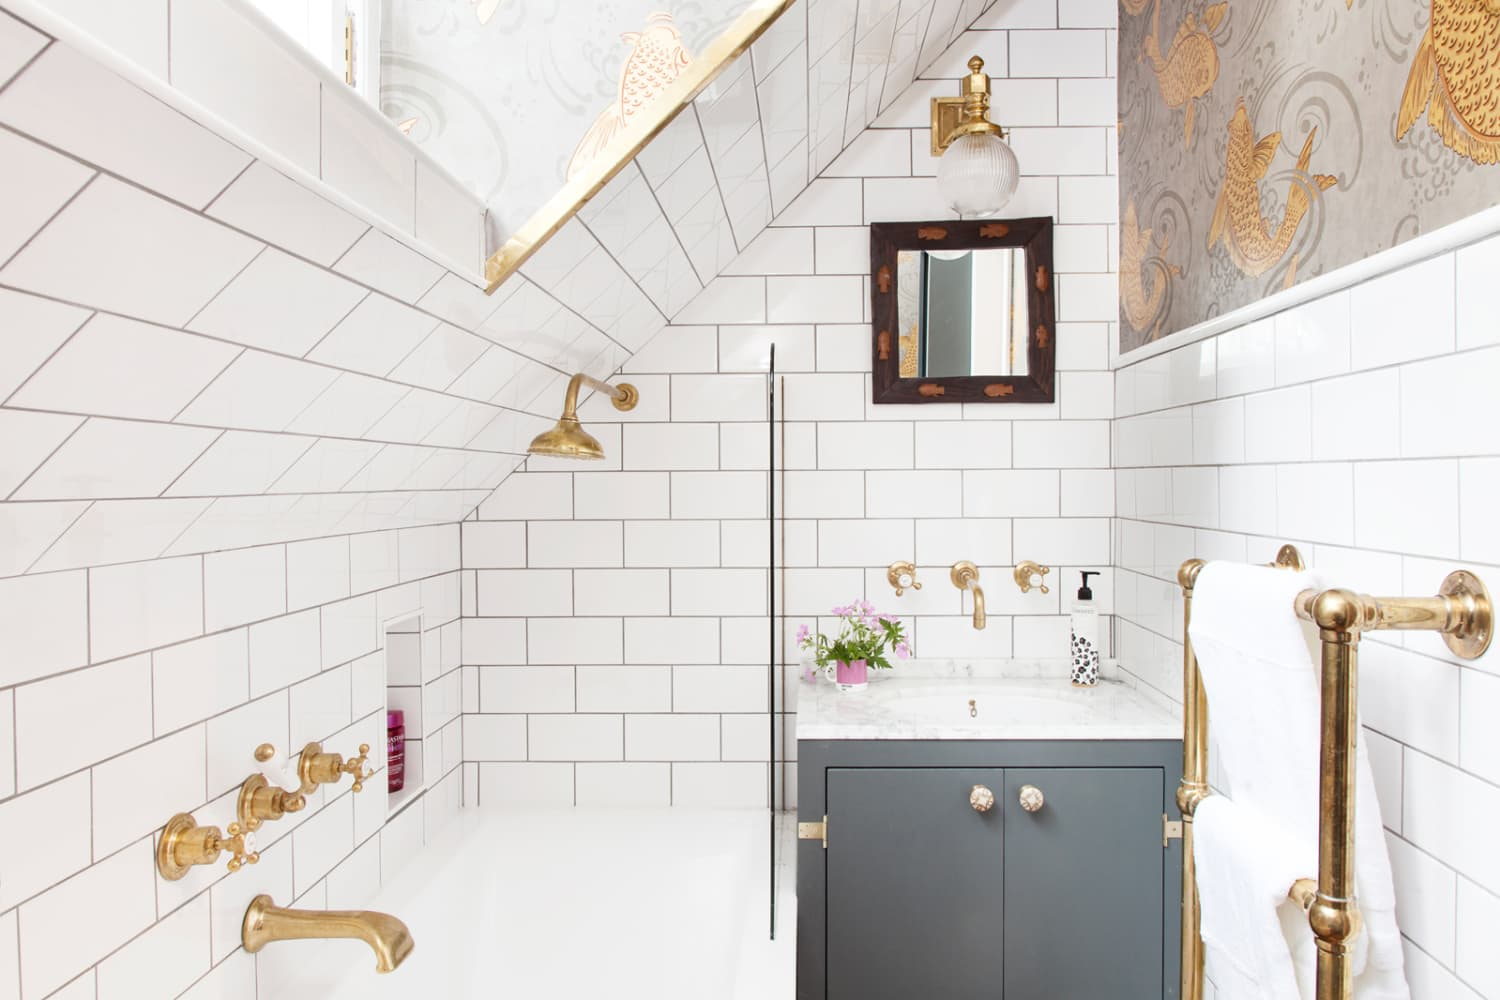 50 Small Bathroom Ideas You'll Want to Try ASAP